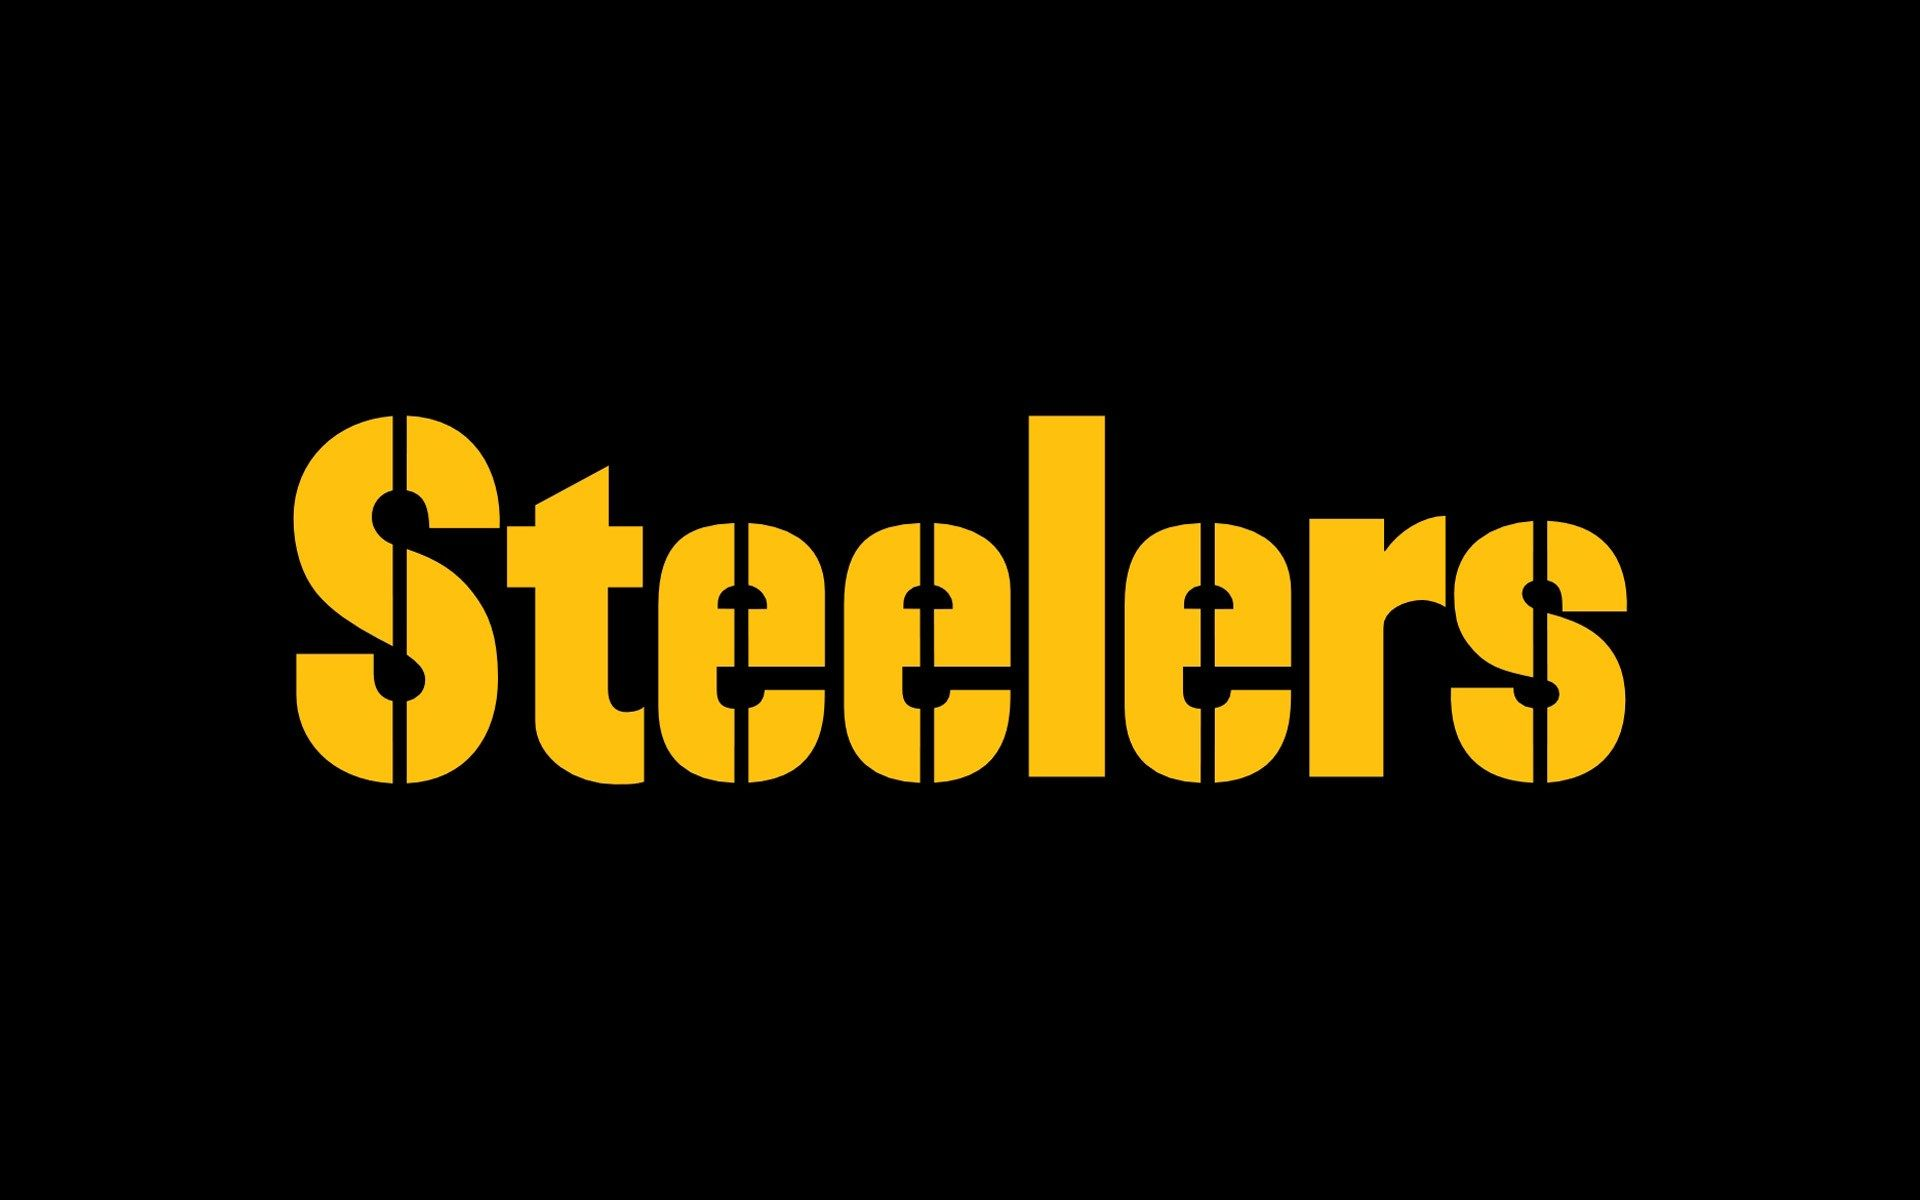 Steiner Young Free Wallpaper And Screensavers For Pittsburgh